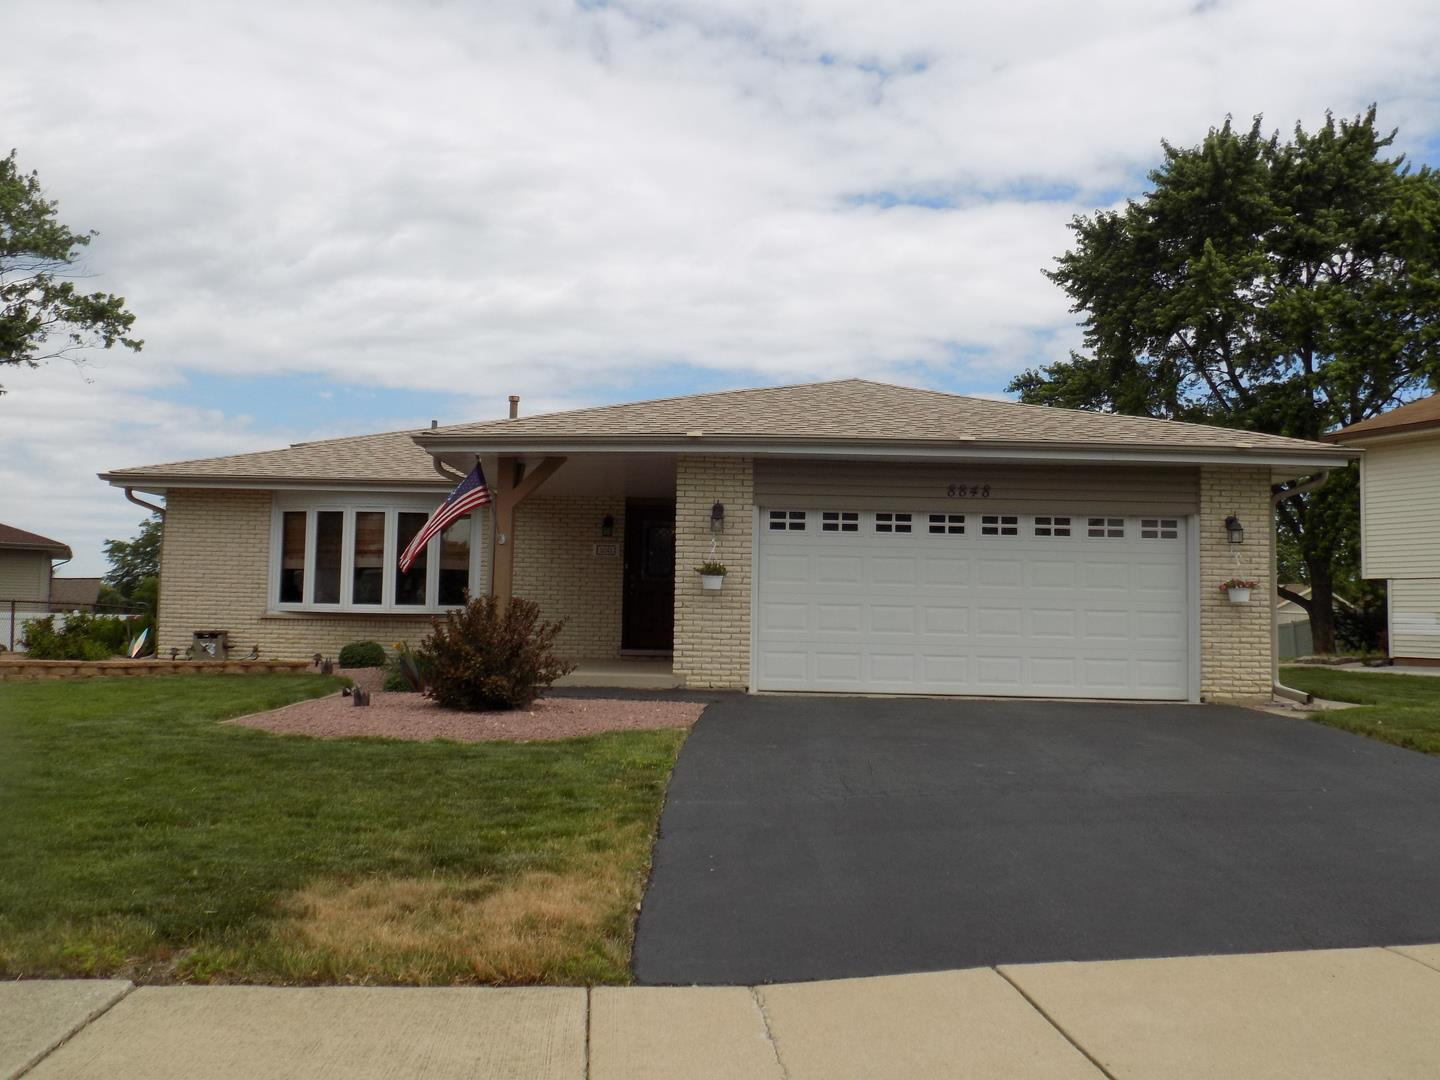 8848 Hickory Drive, Orland Hills, IL 60487 - #: 11124029